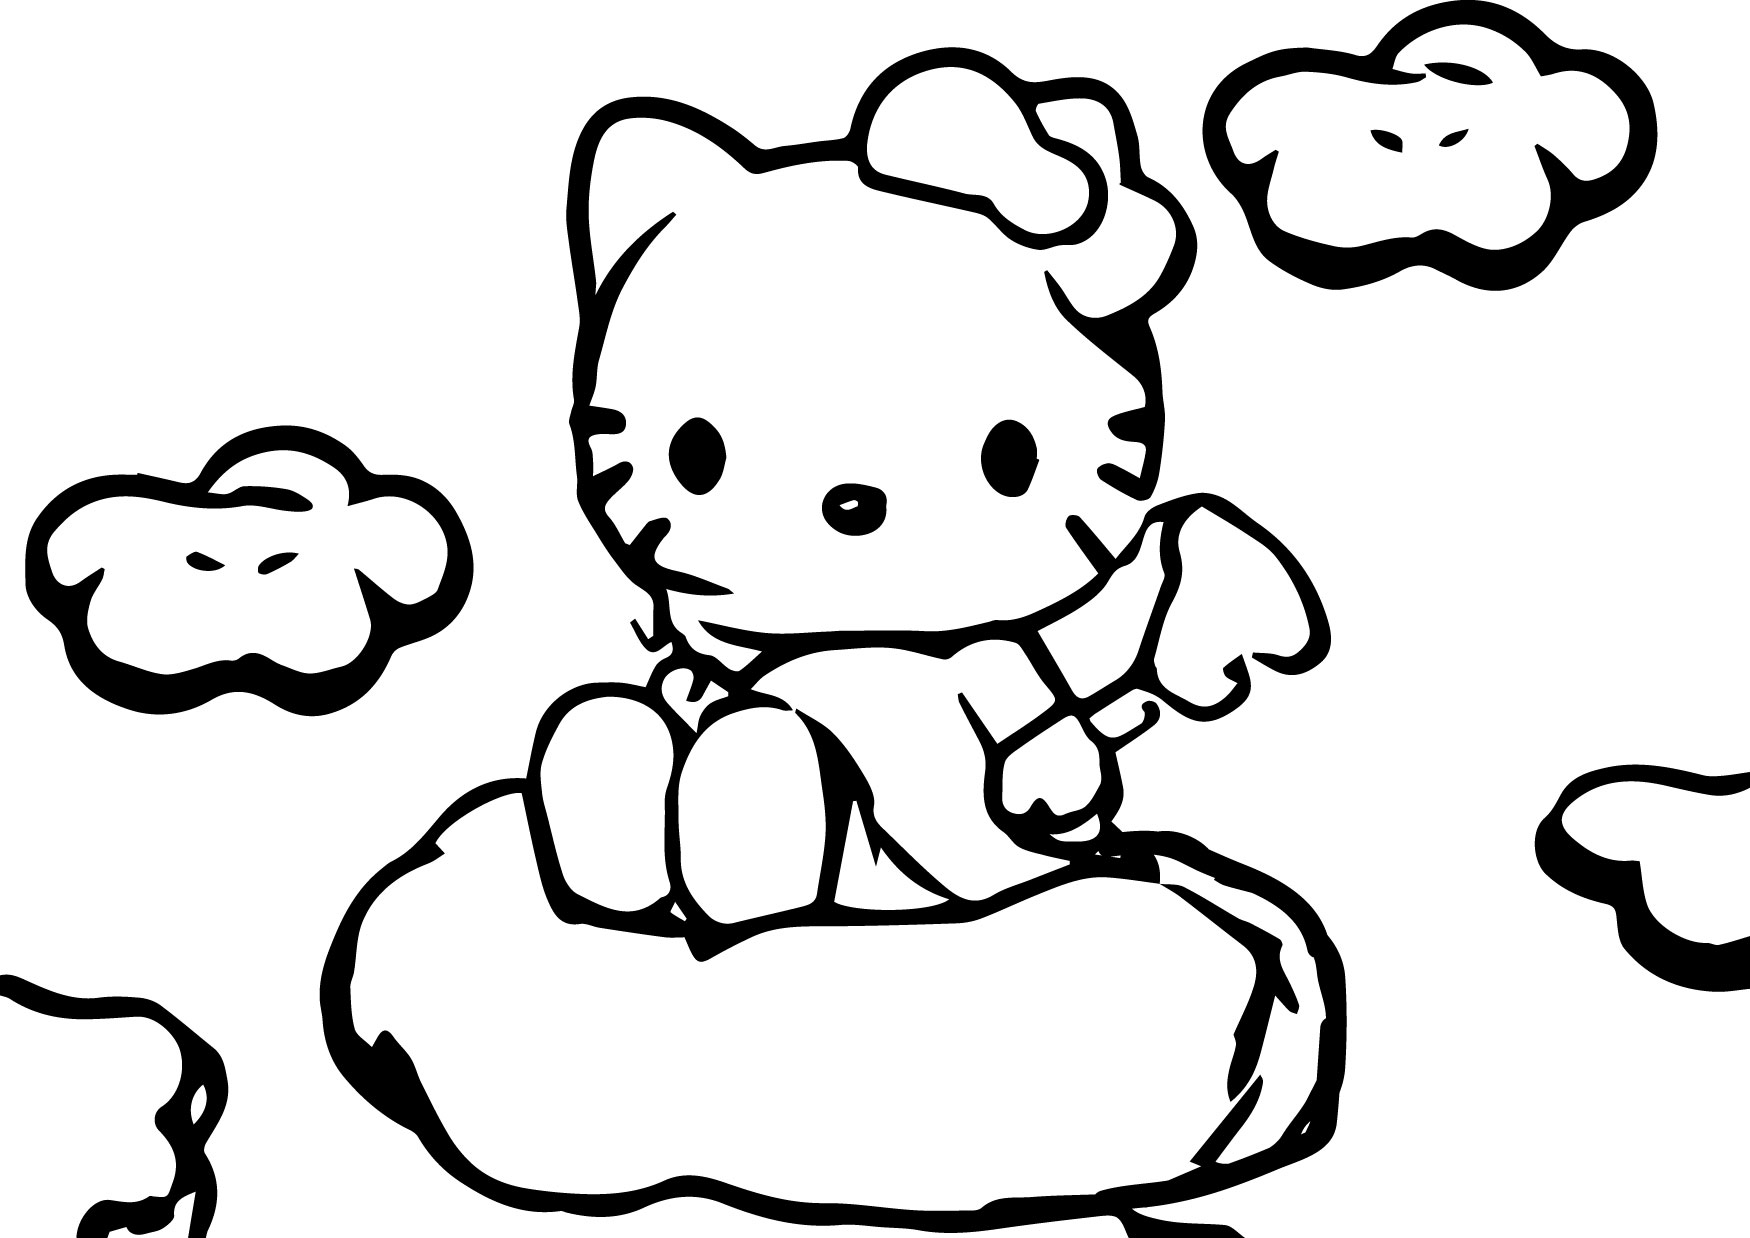 Hello Kitty Cartoon Cloud Coloring Page